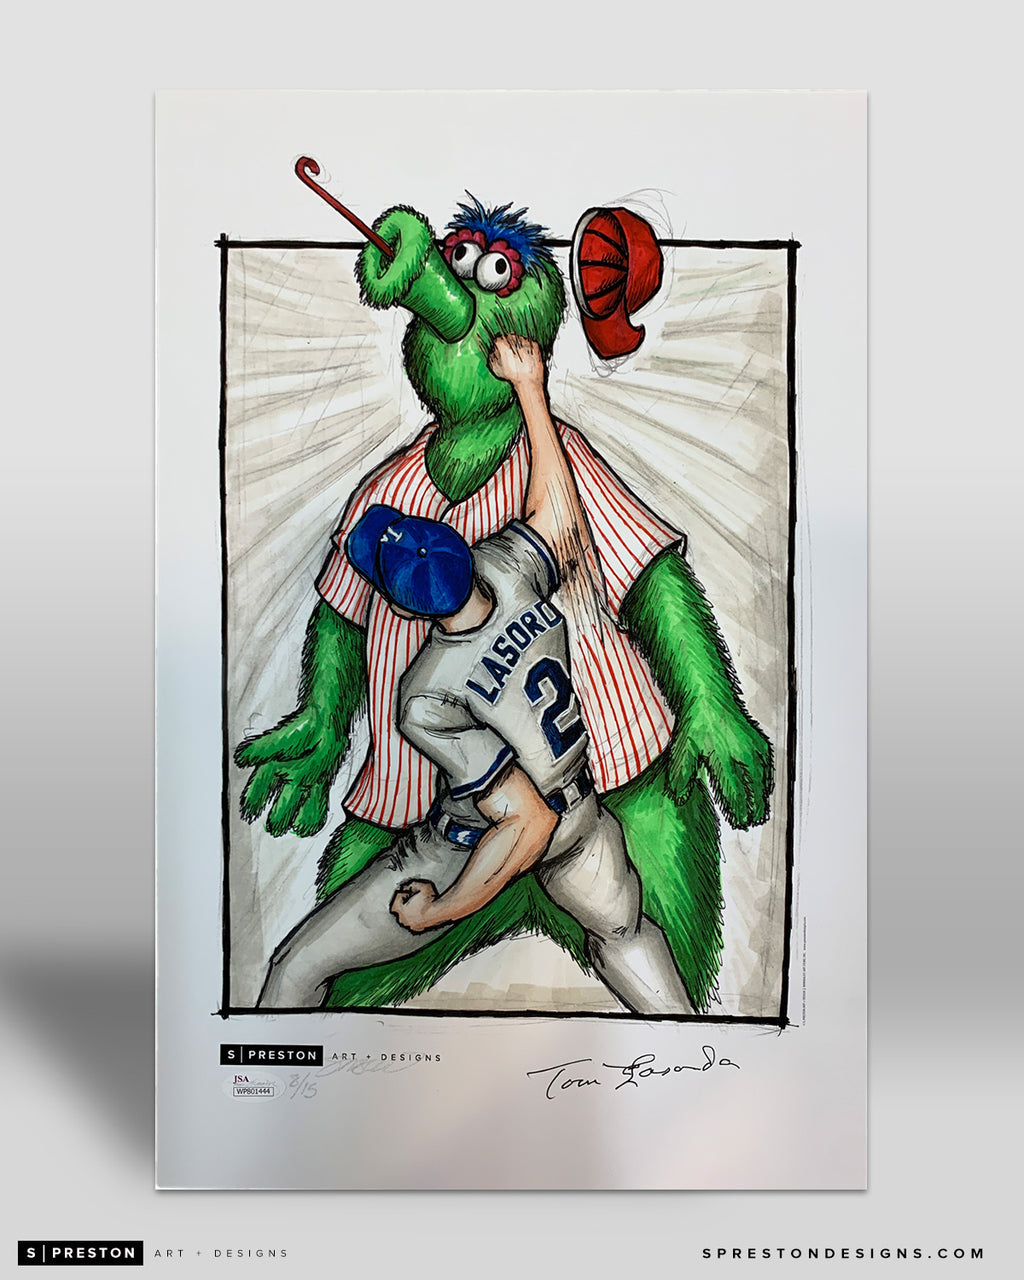 Super LaSorda Punchout Sketch Poster Print - Autographed - JSA Authentication